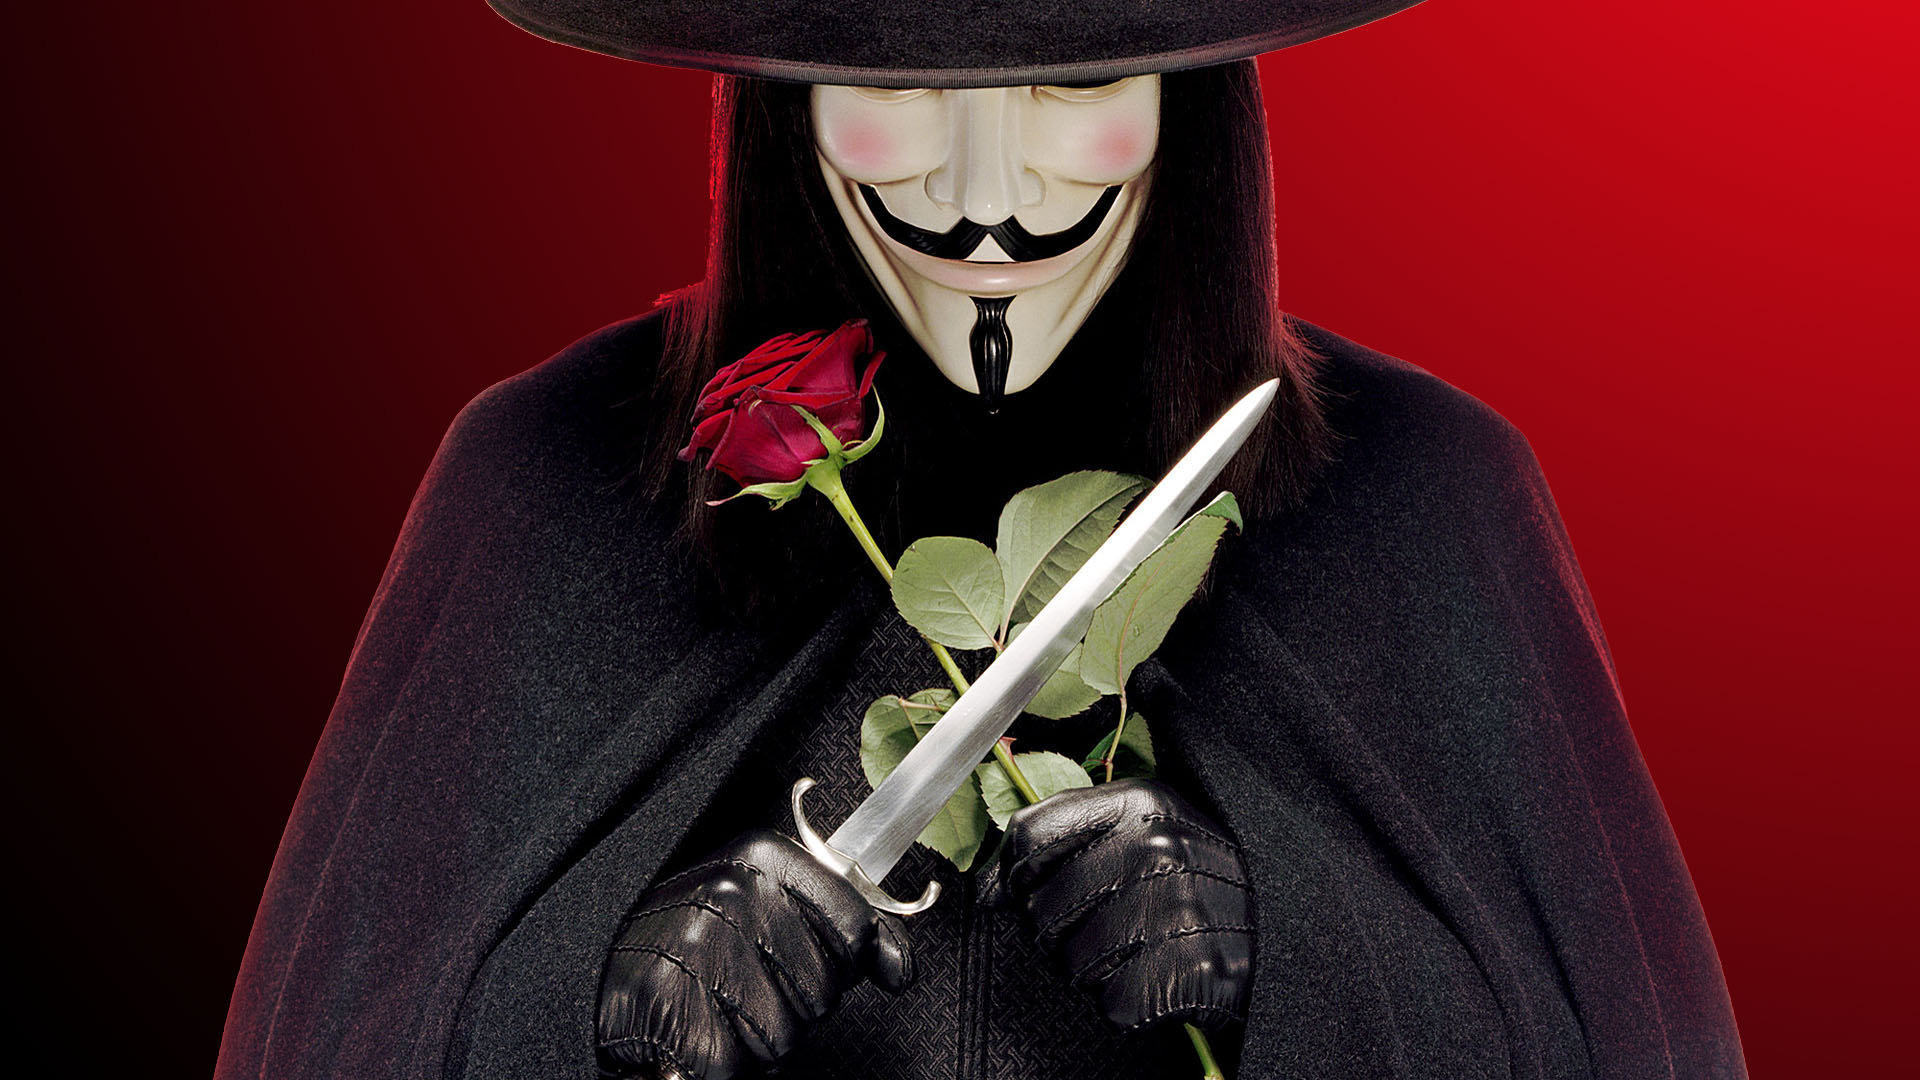 V For Vendetta Backgrounds, Compatible - PC, Mobile, Gadgets| 1920x1080 px